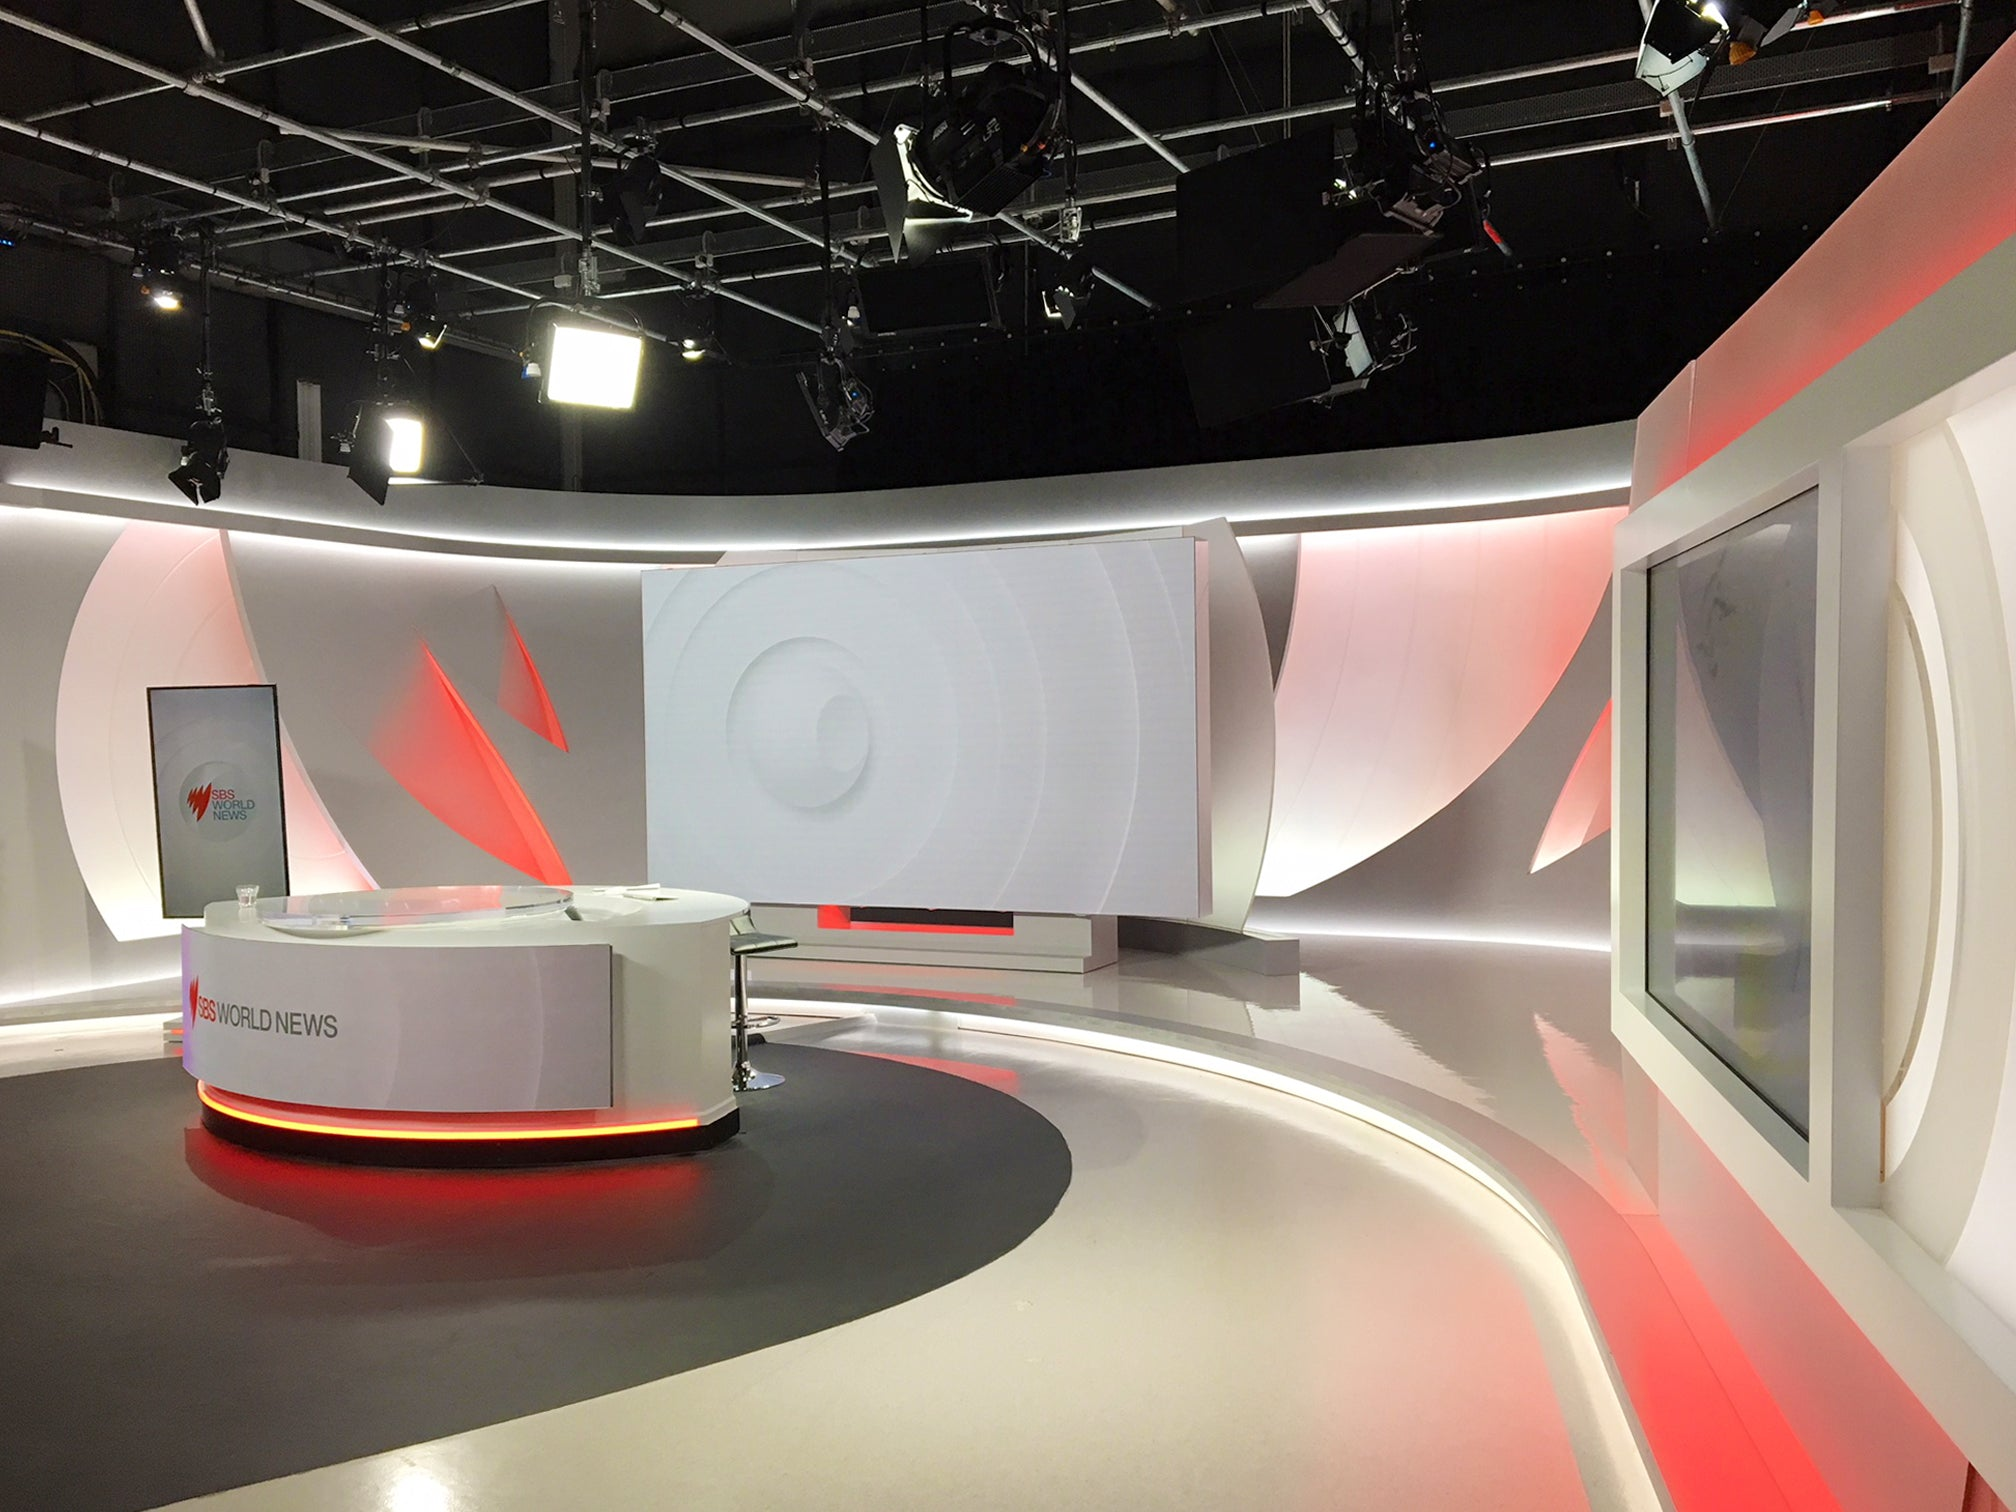 SBS World news TV studio featuring ARRI LED Panels and Fresnels